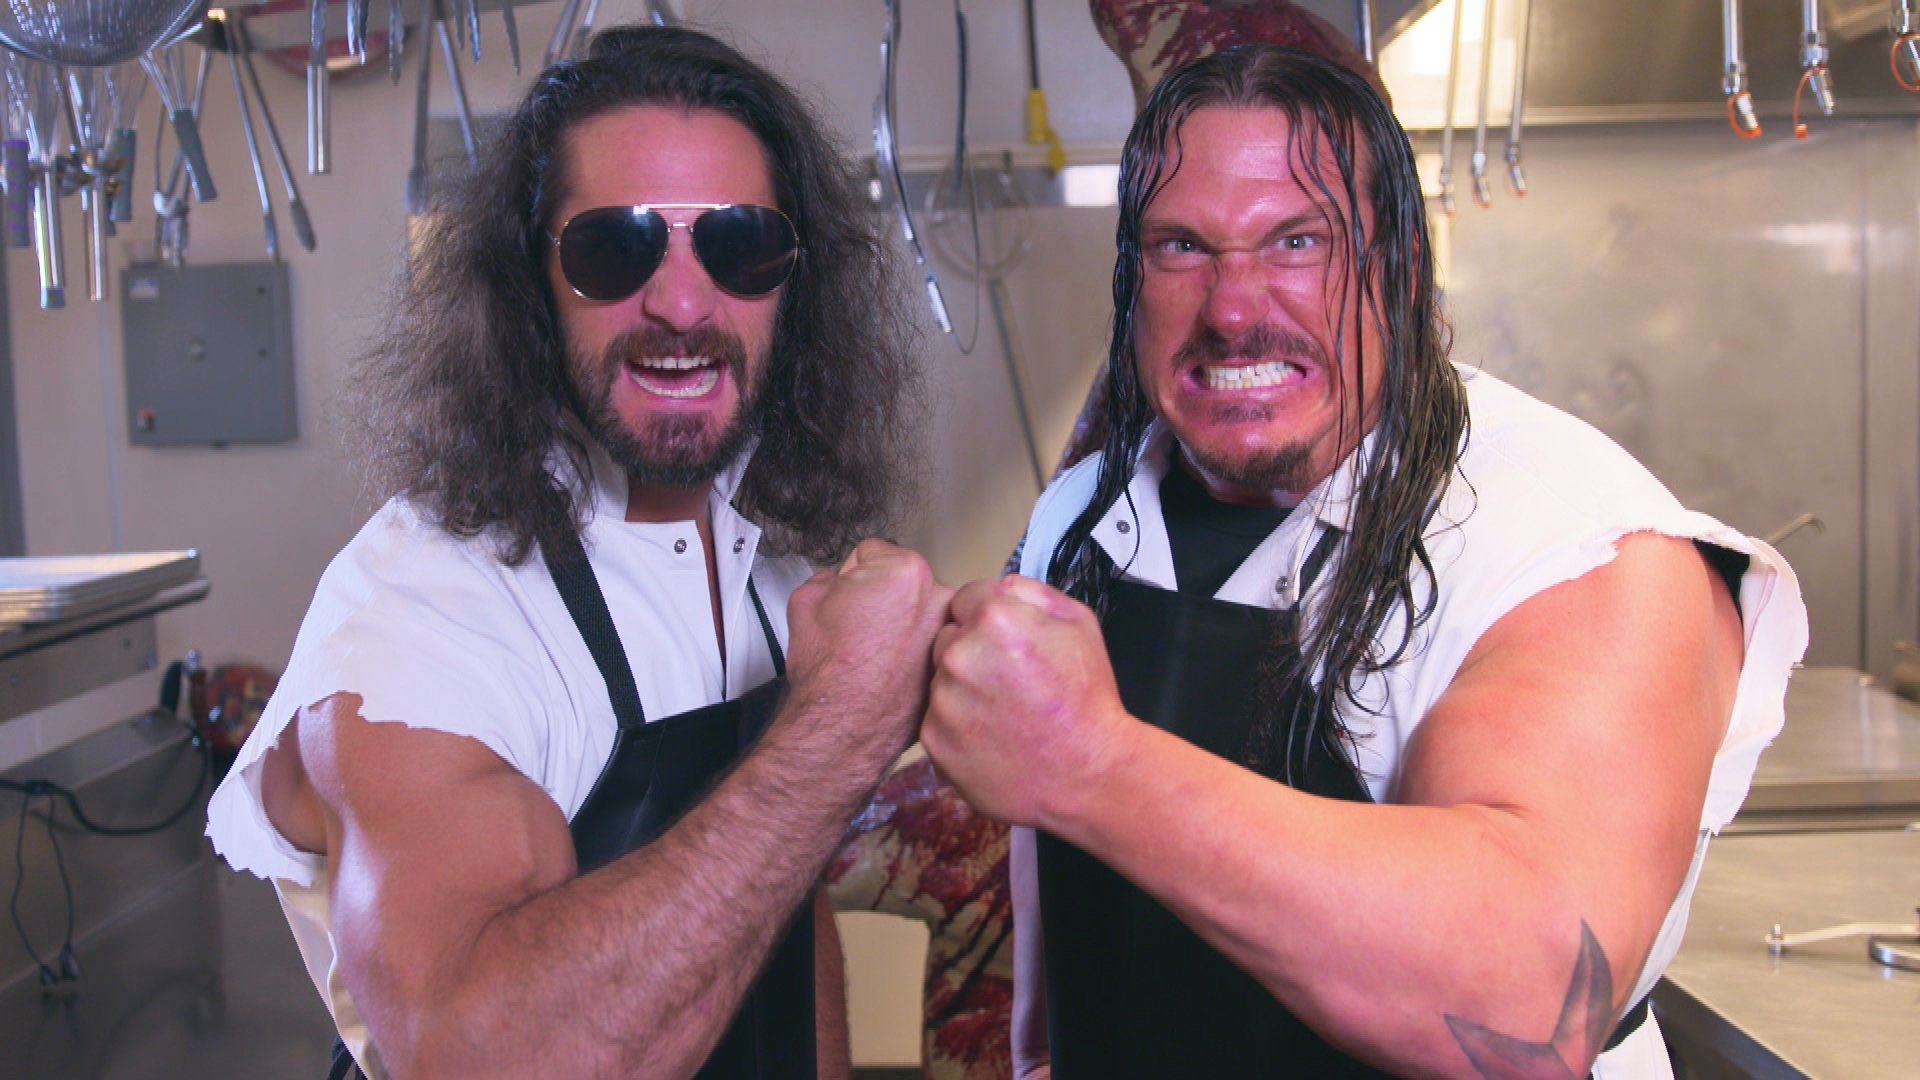 Southpaw Tag Team Champions The Butchers explain why their meat can't be beat: Southpaw Regional Wrestling Extra